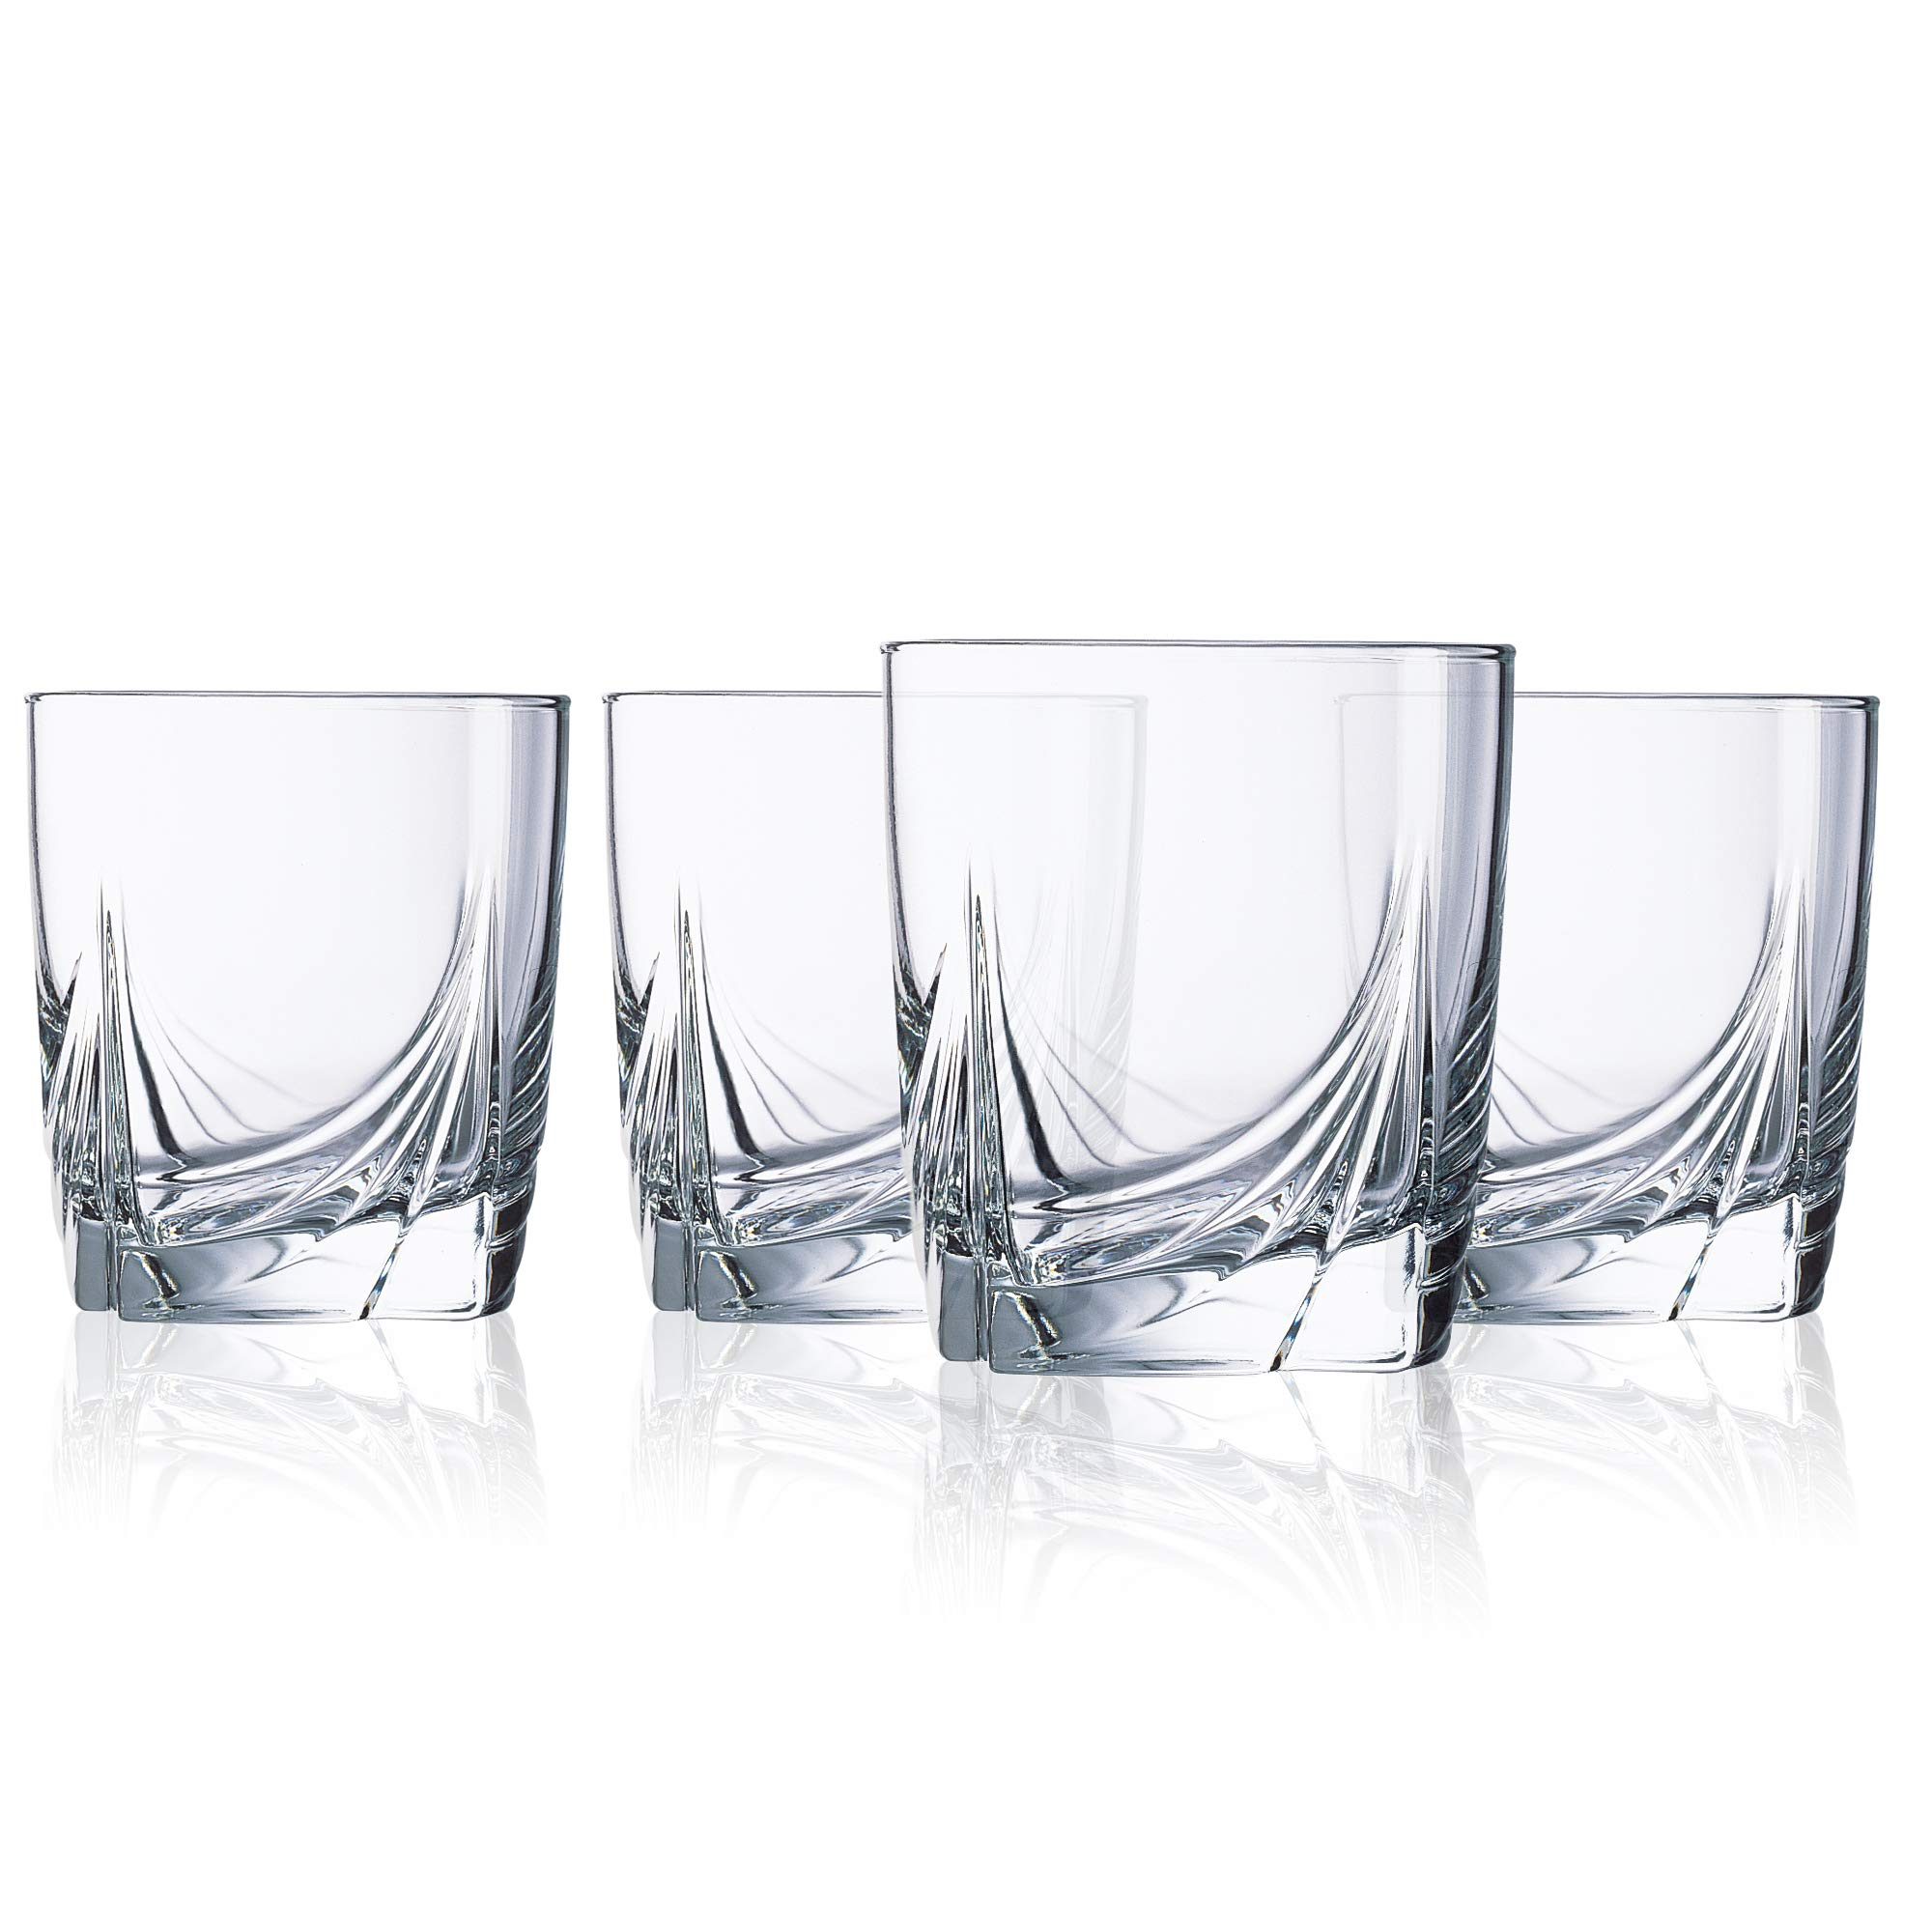 Luminarc Double Old Fashioned Drinking Glasses Parallels Drinkware Short Set of 4 Clear